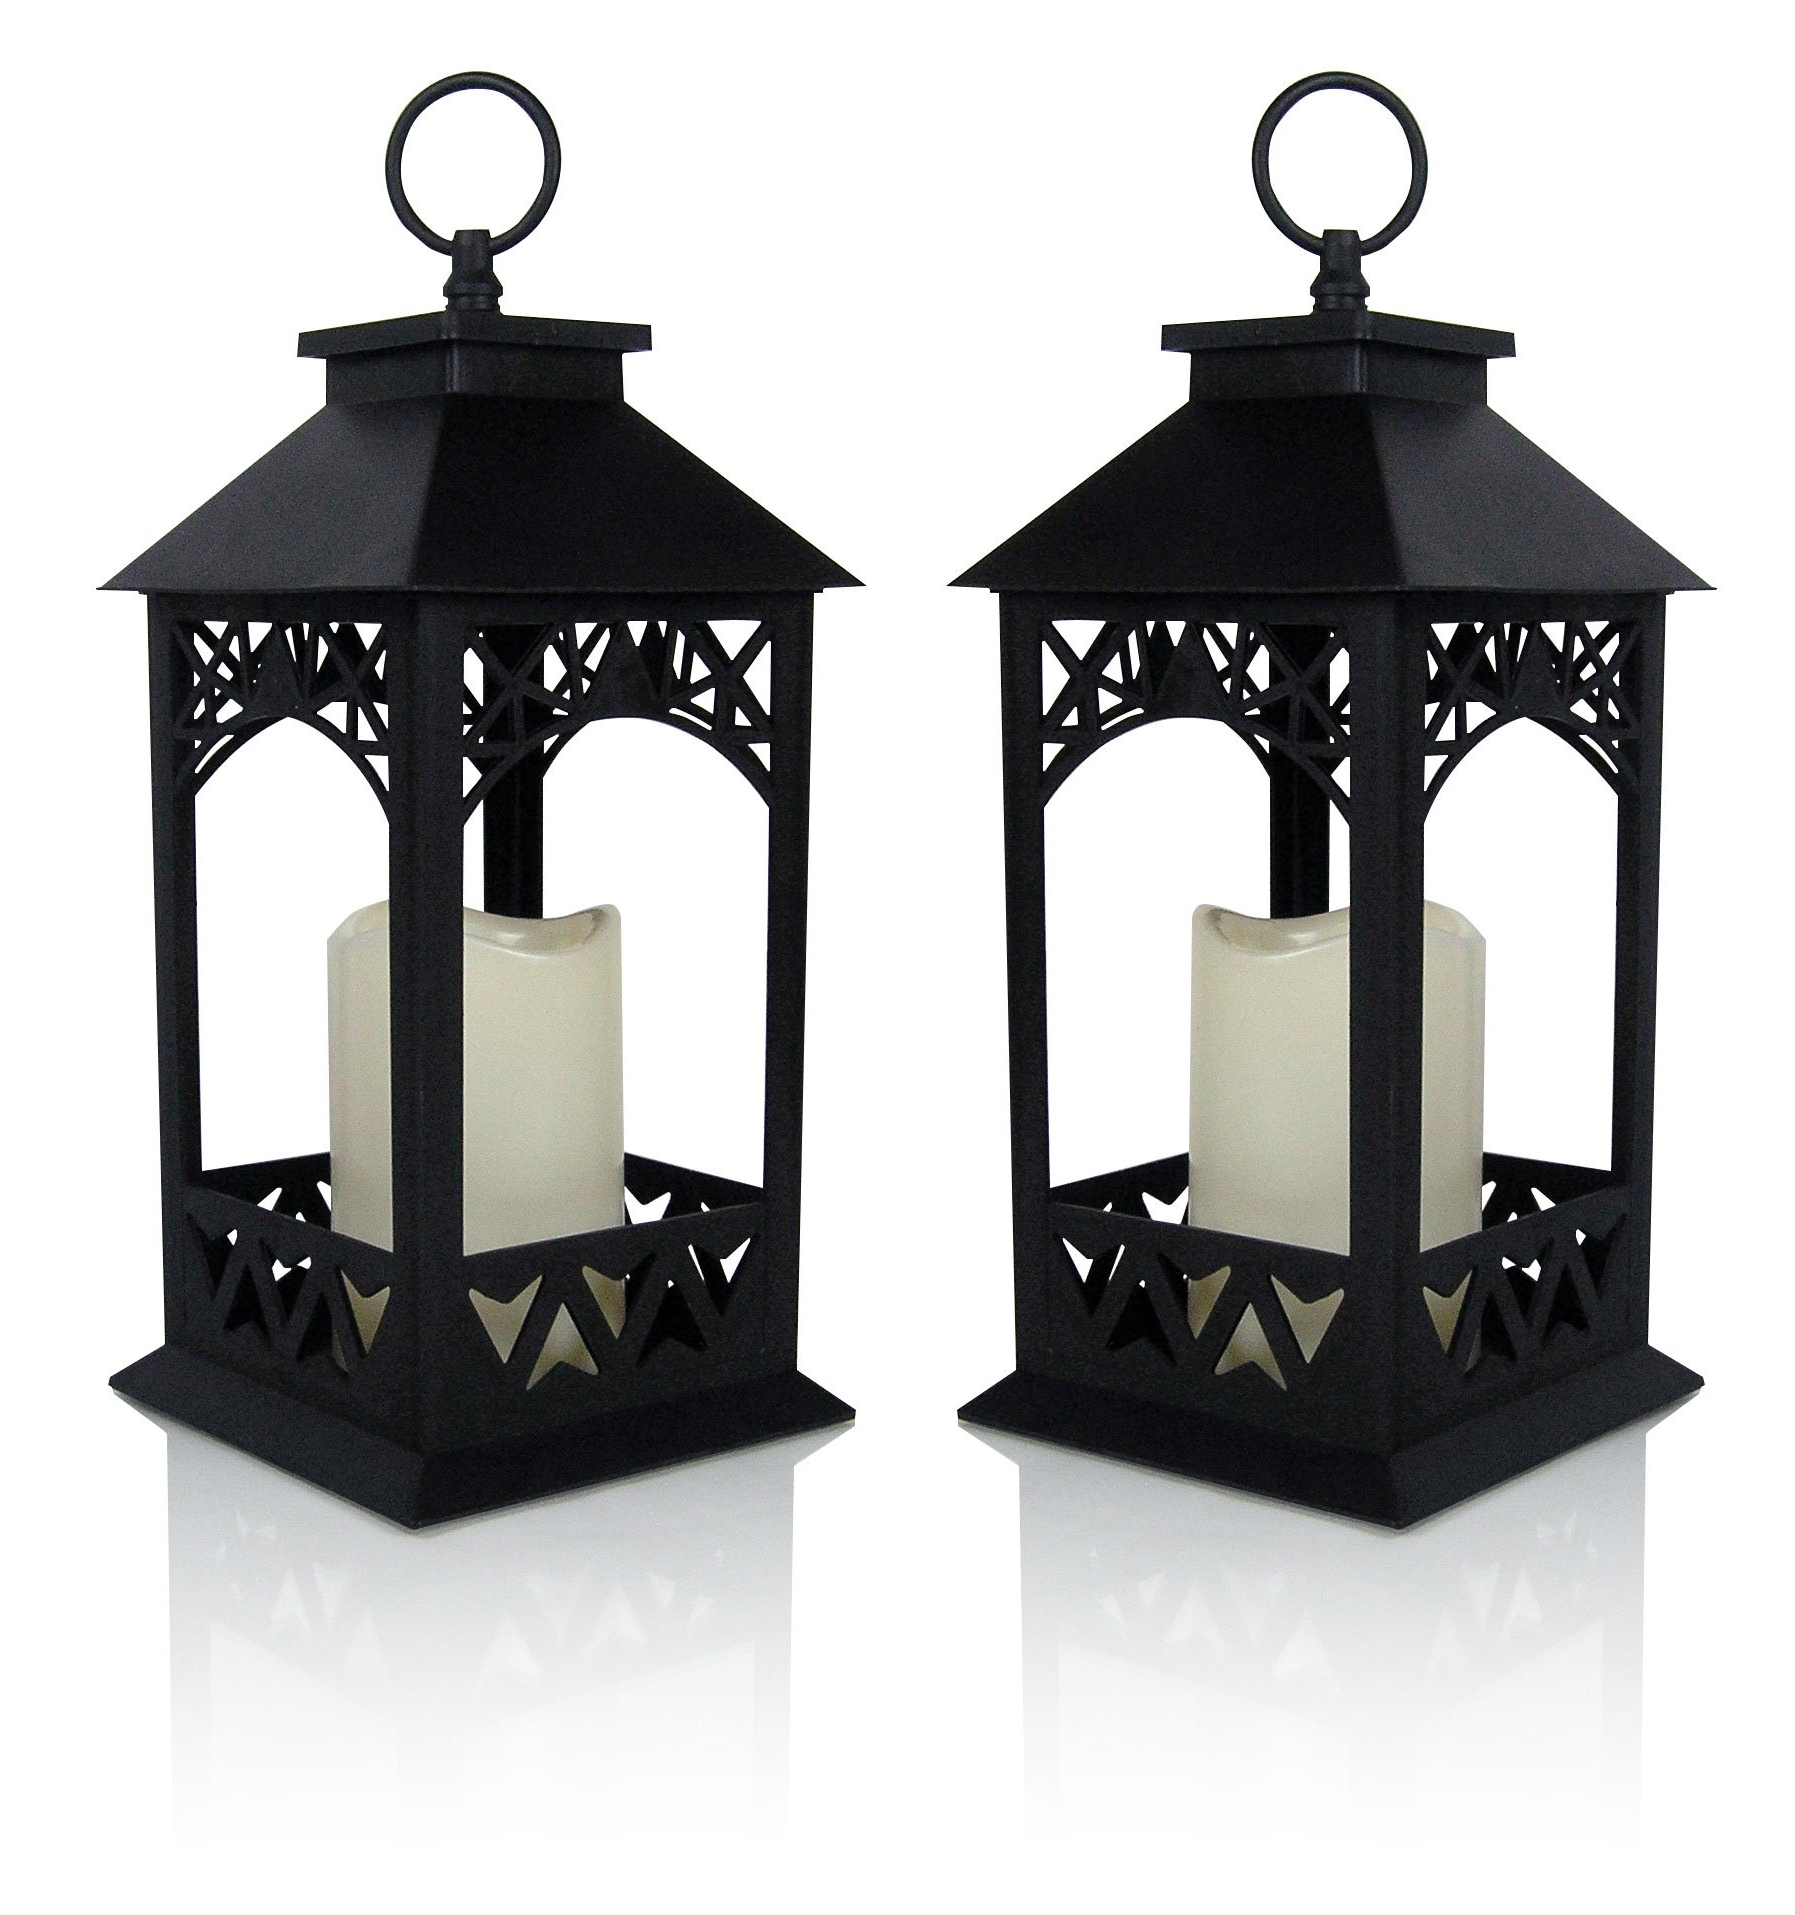 Cheap Outdoor Lanterns Candle, Find Outdoor Lanterns Candle Deals On Regarding Well Liked Outdoor Lanterns For Pillars (View 10 of 20)